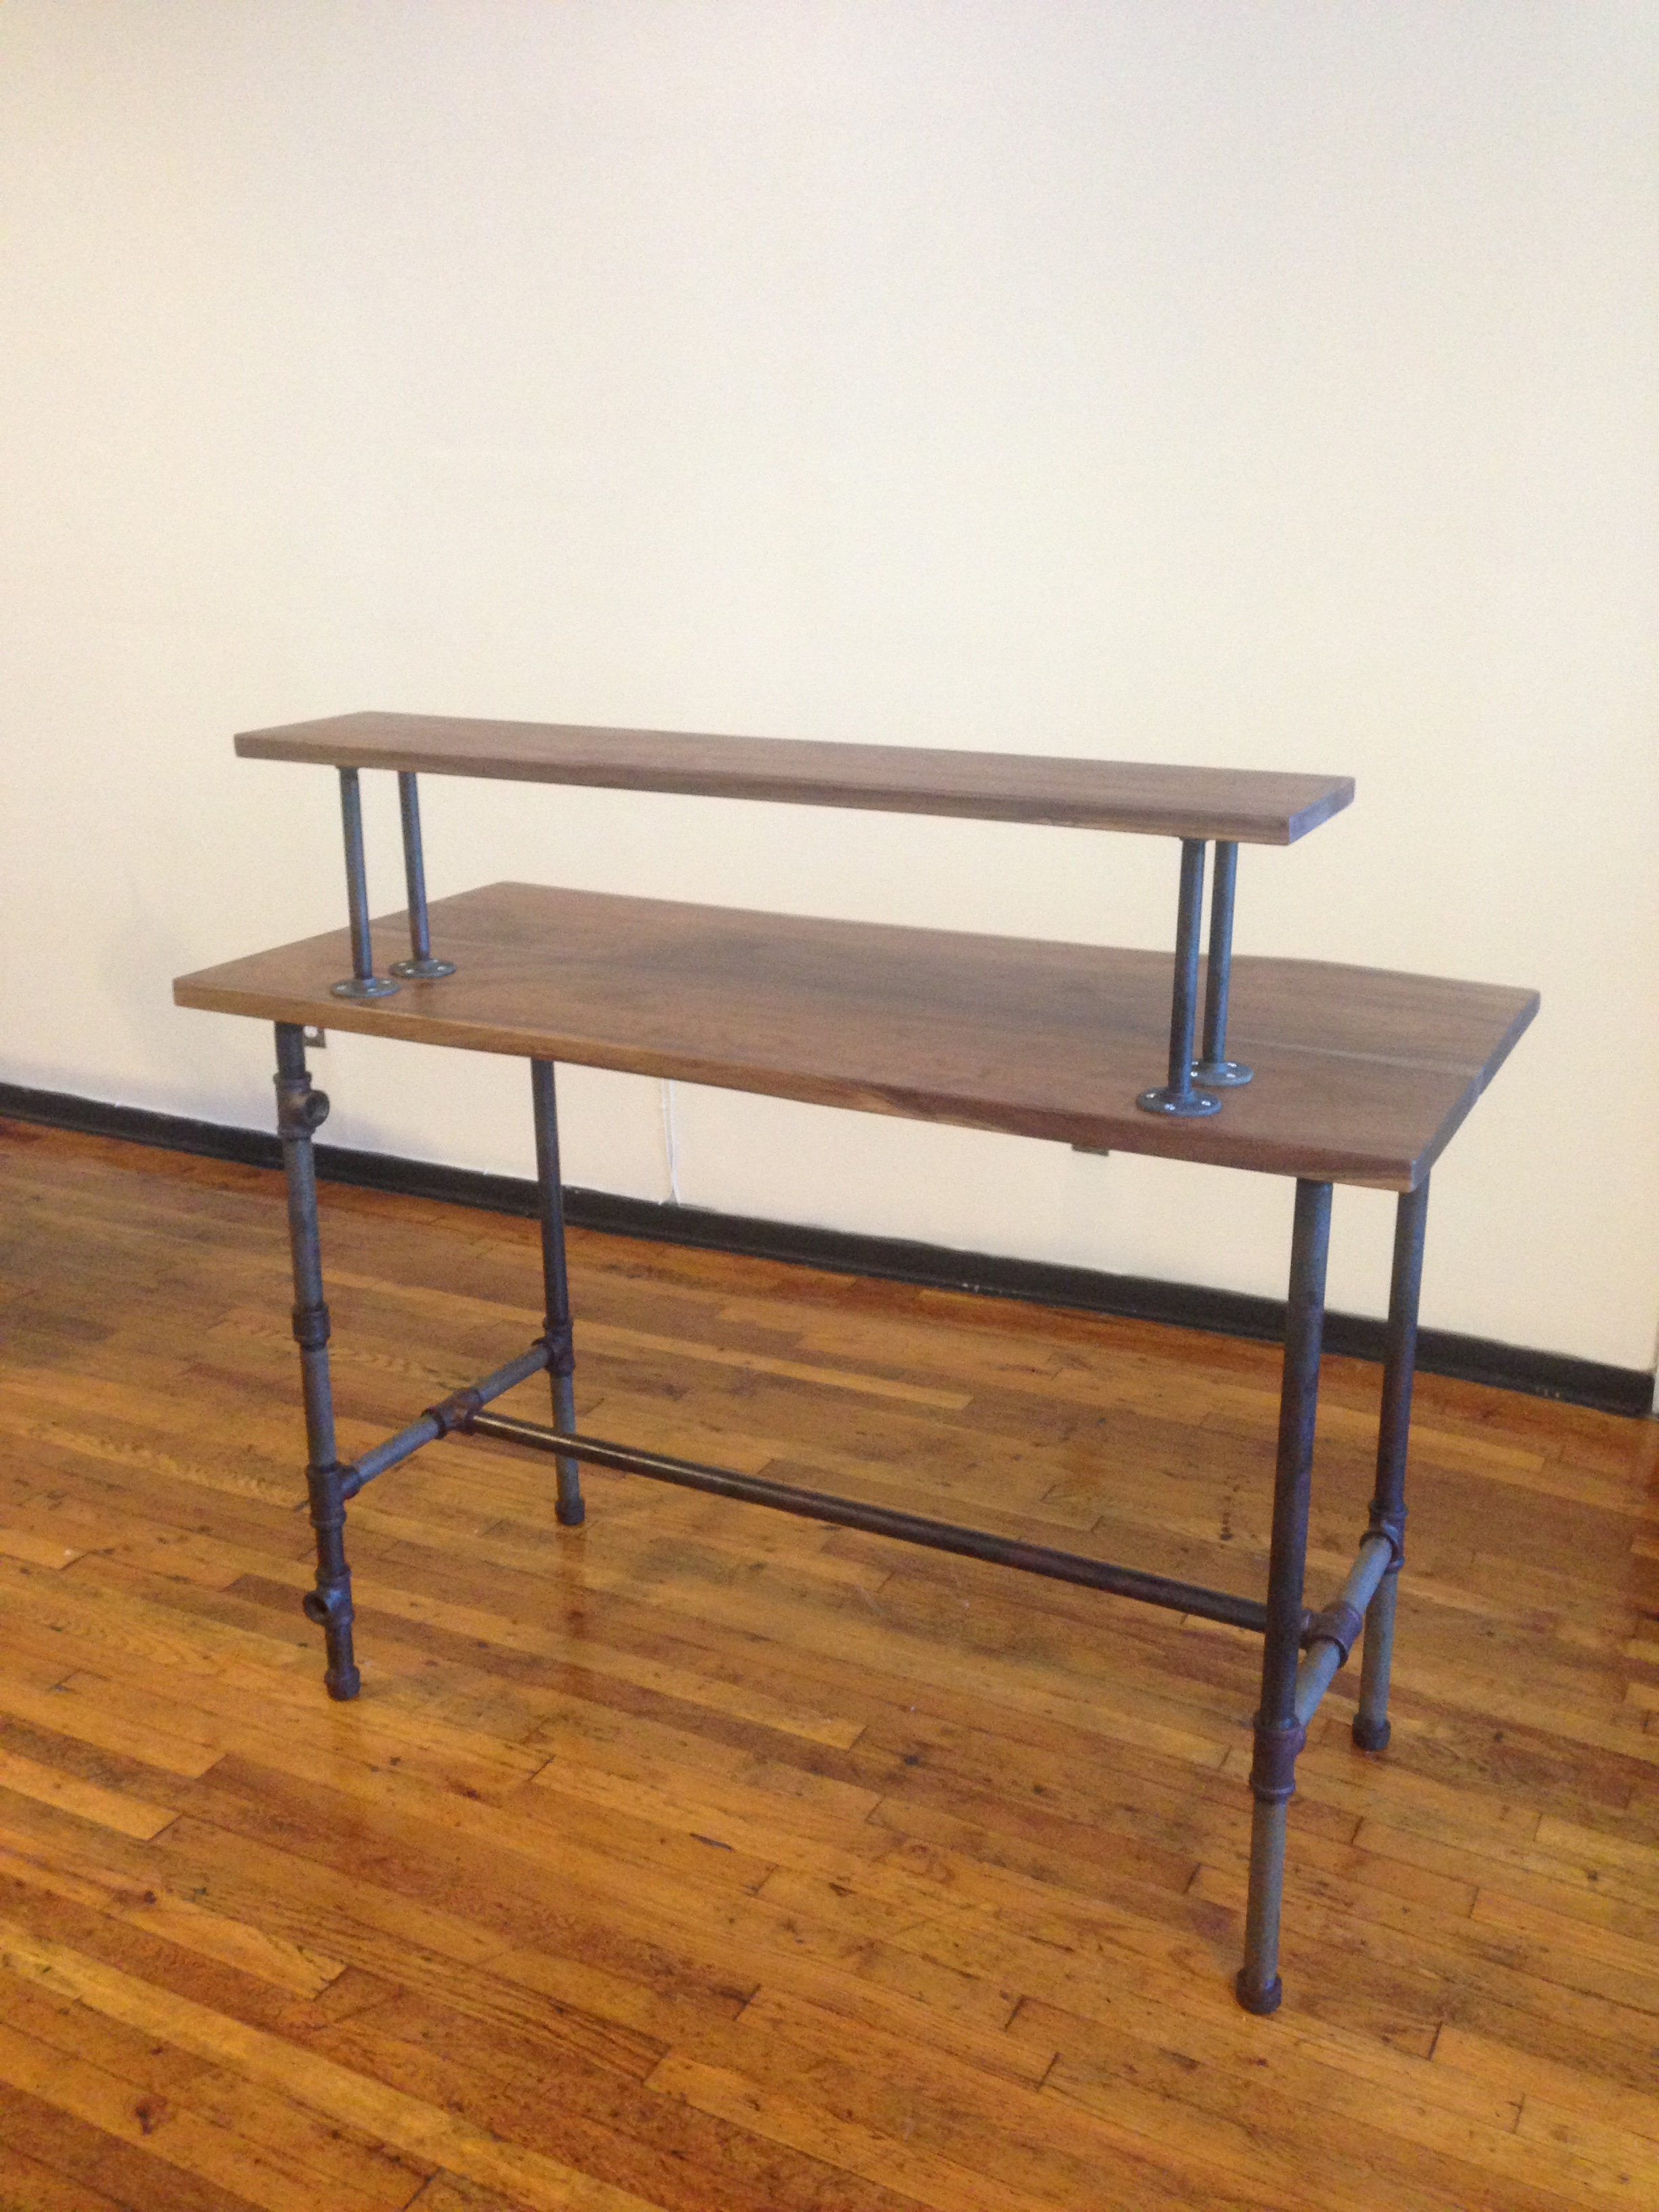 Our Complete Steel Pipe Standing Desk!